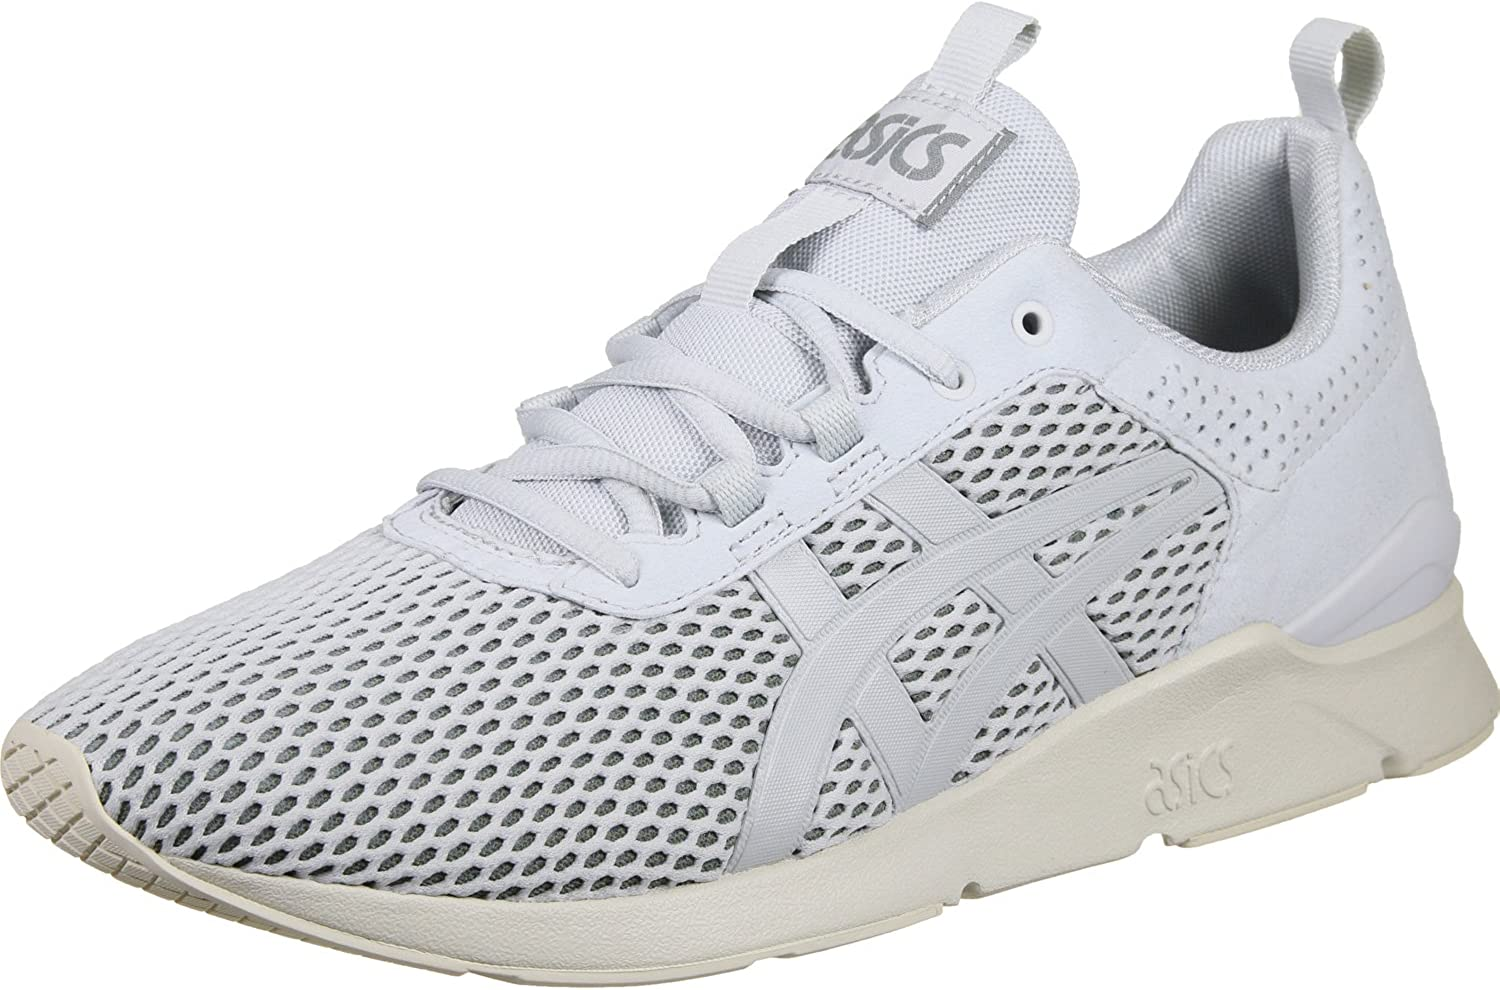 Asics Tiger Gel Lyte Runner Calzado glacier grey: Amazon.es: Libros